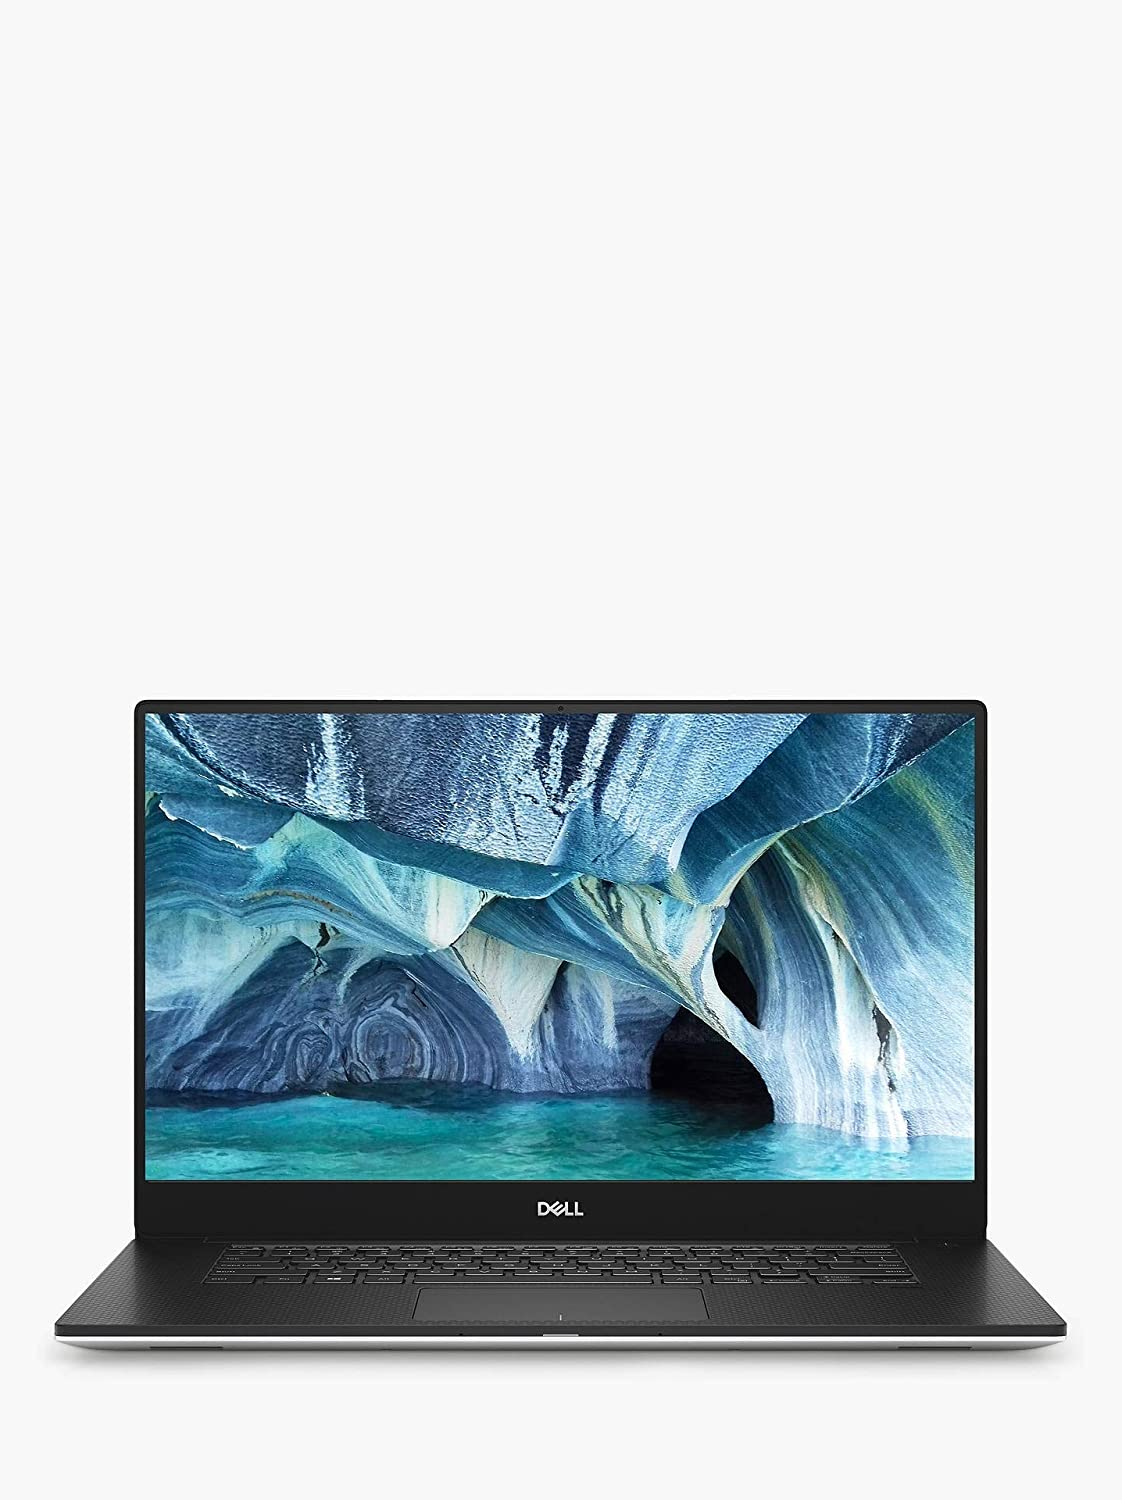 "Dell XPS 7590 Intel Core i9-9980HK X8 5.0GHz 32GB 1TB SSD 15.6"", Silver (Renewed)"